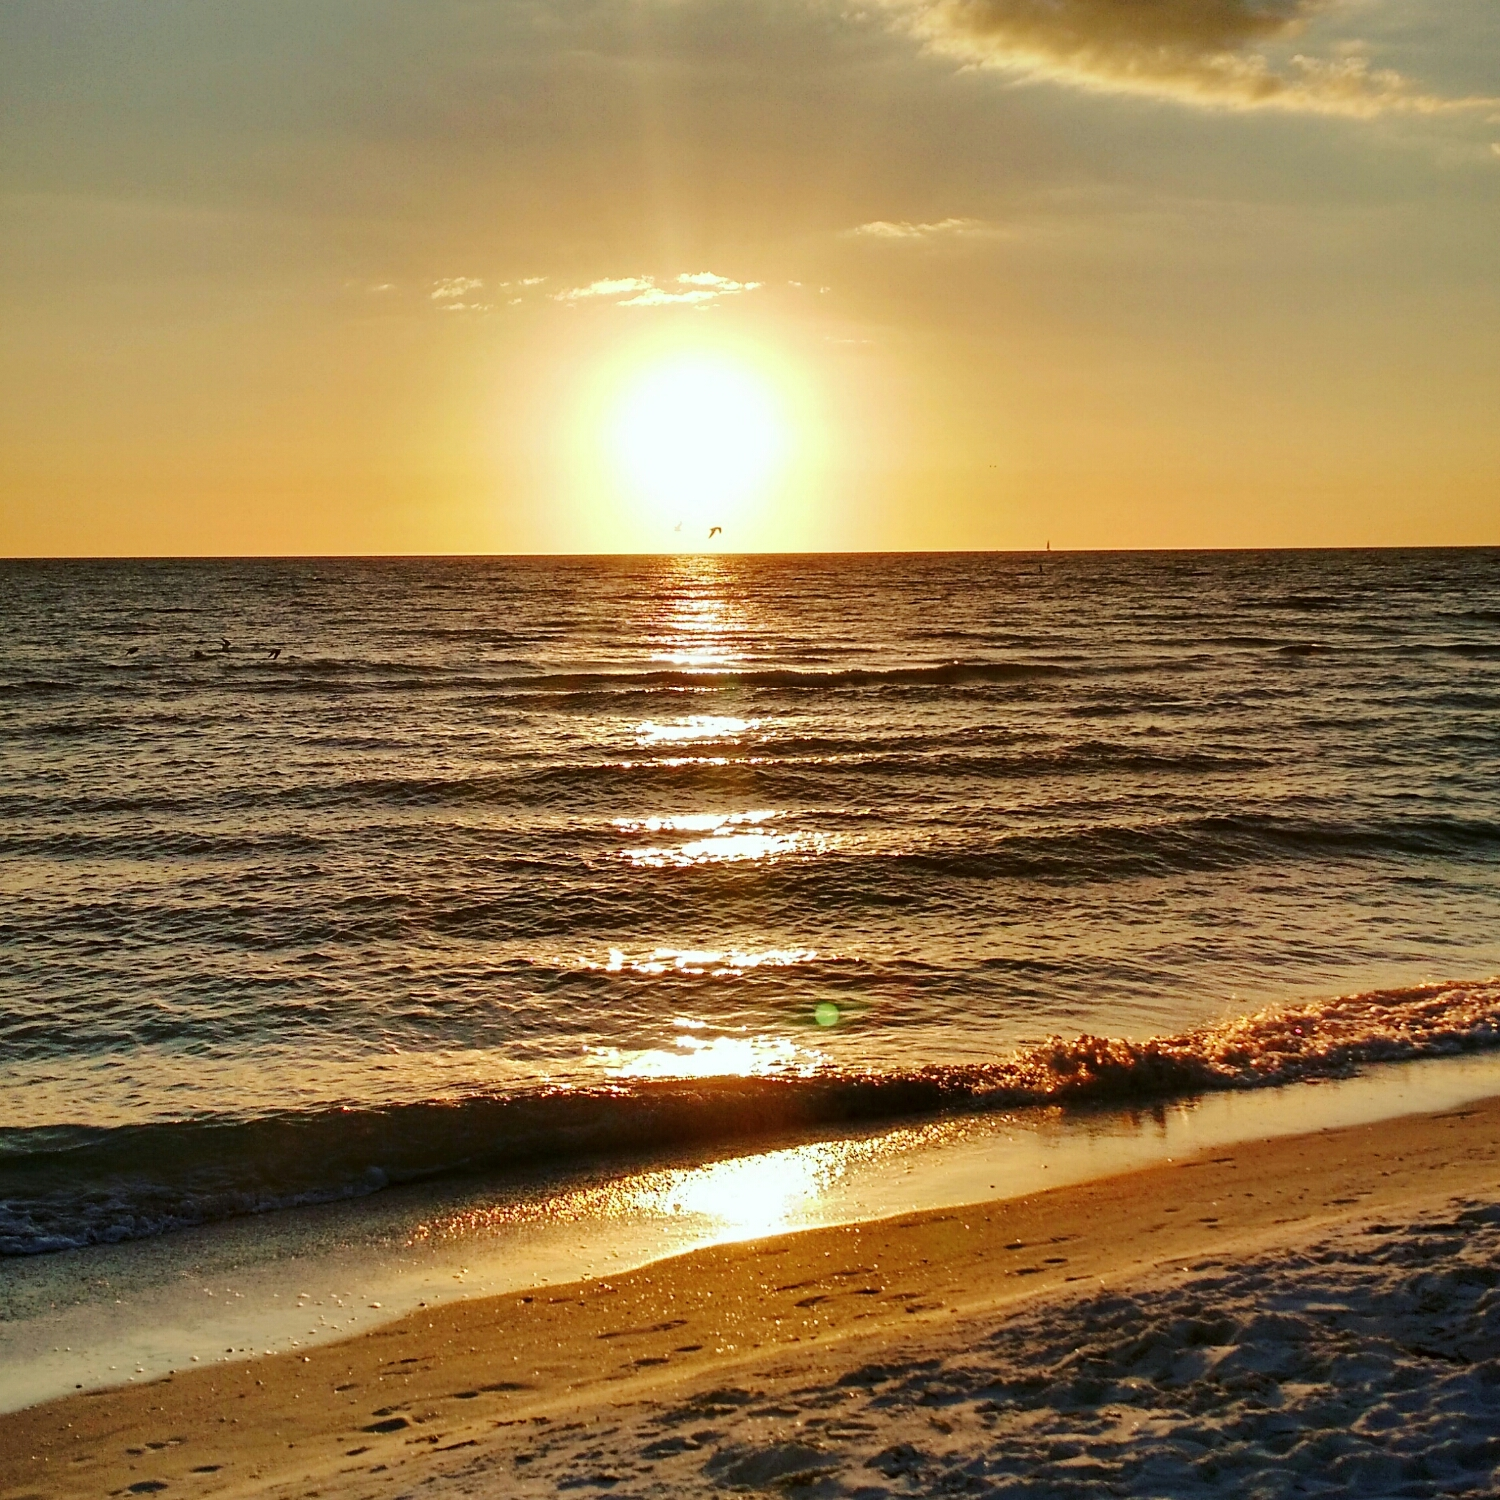 Our beautiful view from the beach in St. Petersburg Florida